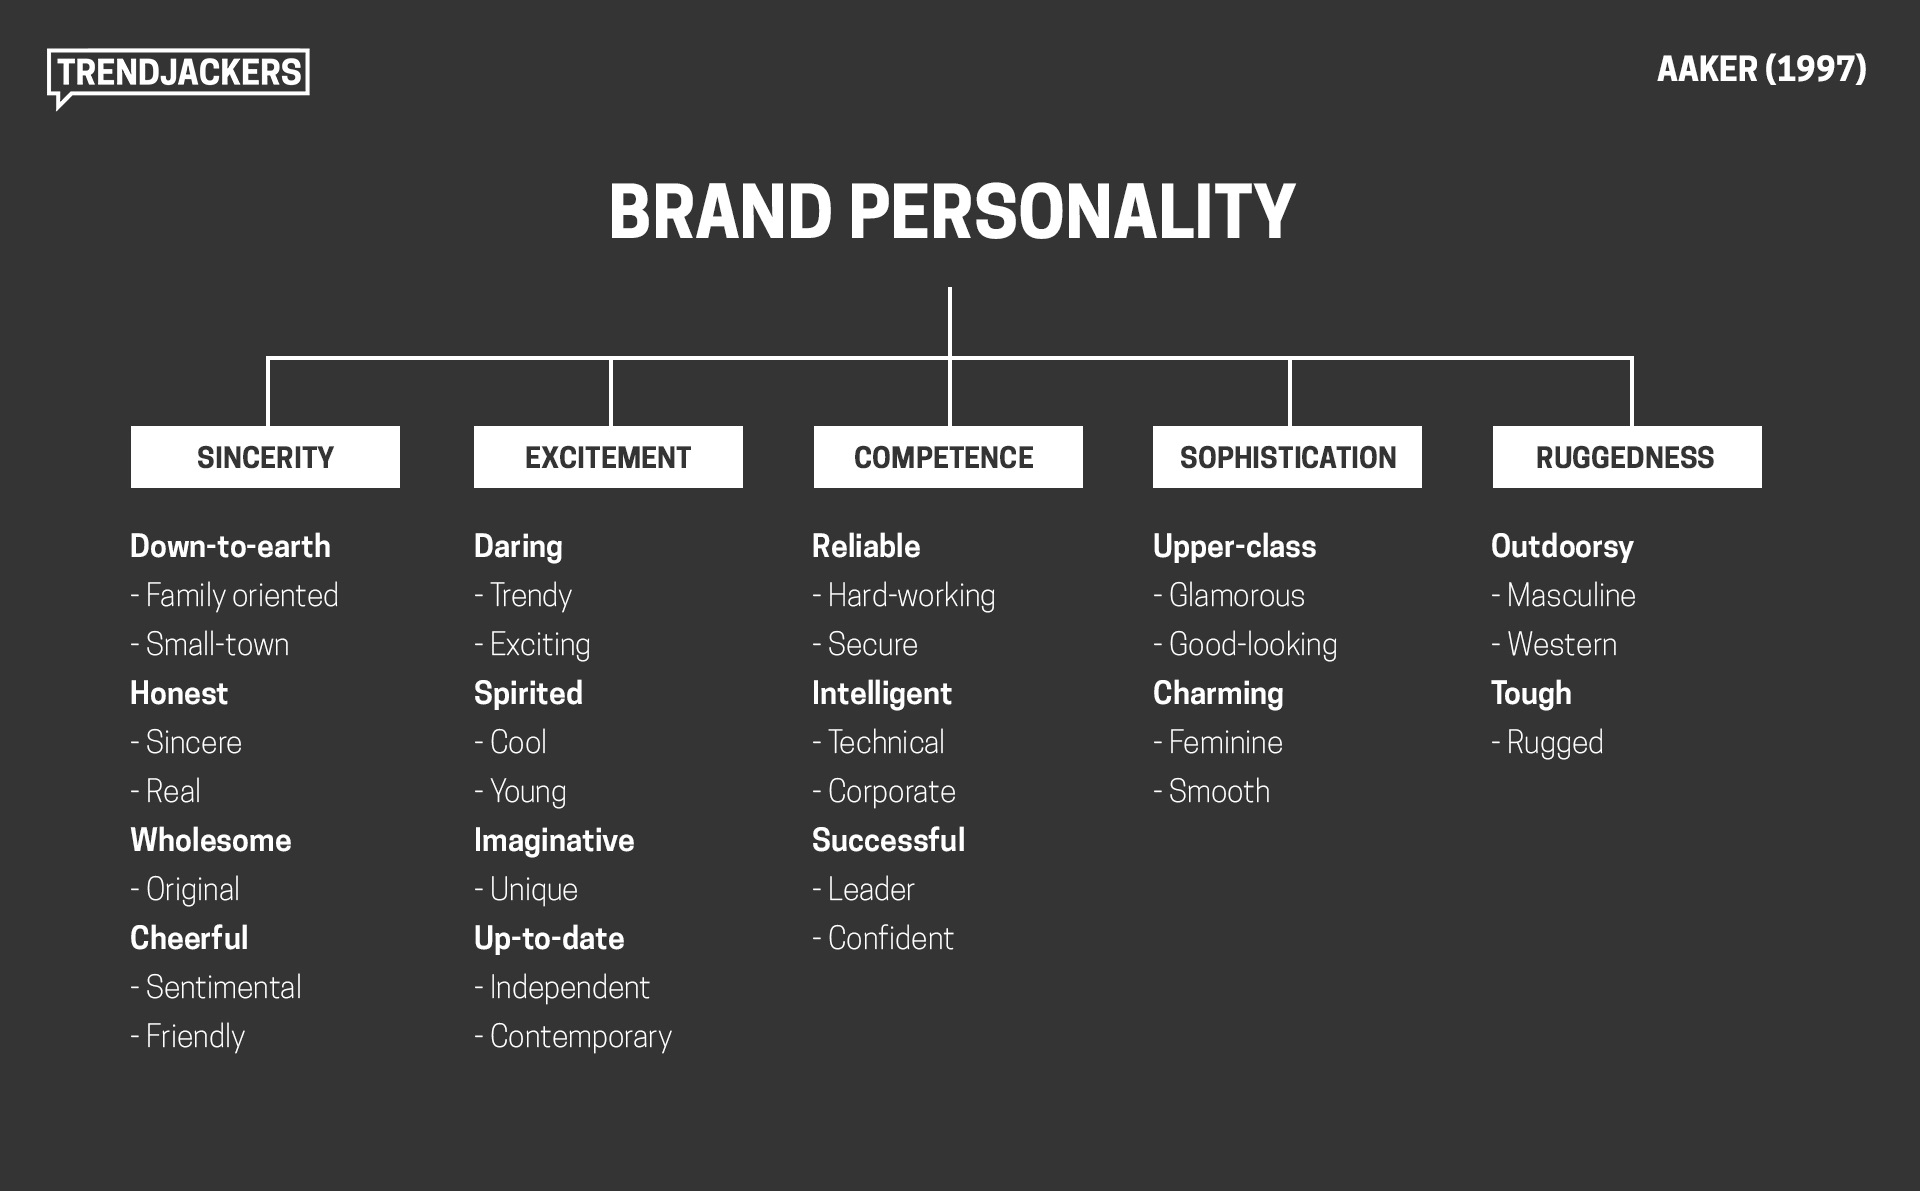 Aaker's Brand Personality Model